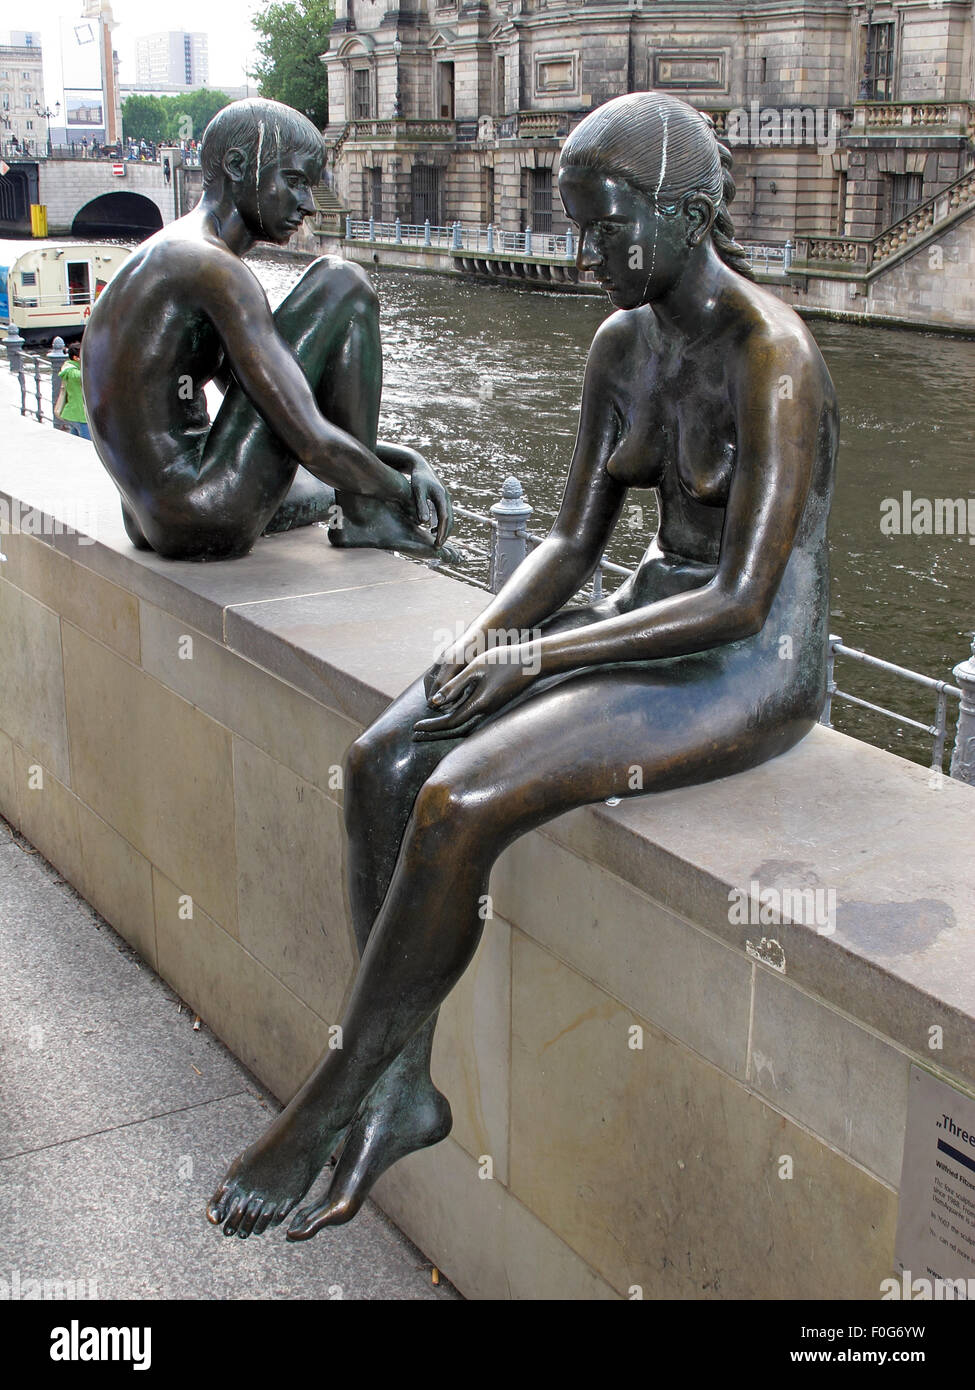 3,Statue,by,the,Spree,River,Moabit,Berlin,Germany,bronze,bank,side,of,art,artist,public,publicart,German,sculptor,DomAquarée,DomAquaree,summer,sunny,bright,city,cities,culture,side,view,sideview,sit,sitting,GoTonySmith,Buy Pictures of,Buy Images Of